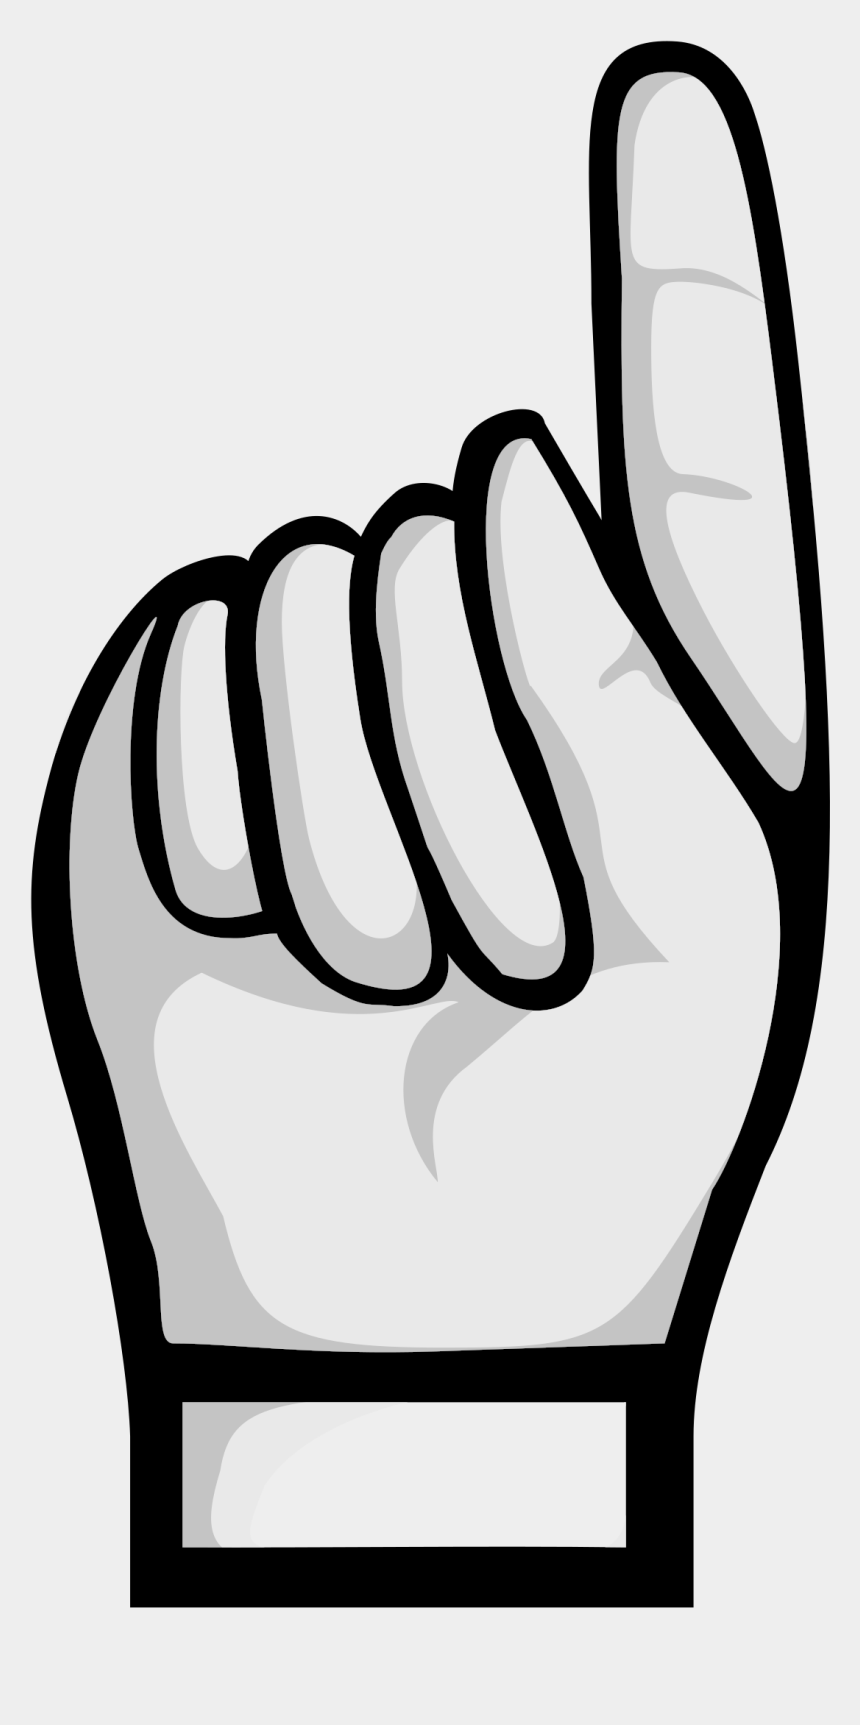 clip art hand, Cartoons - 28 Collection Of Hand Pointing Up Clipart - Hand Pointing Up Clipart